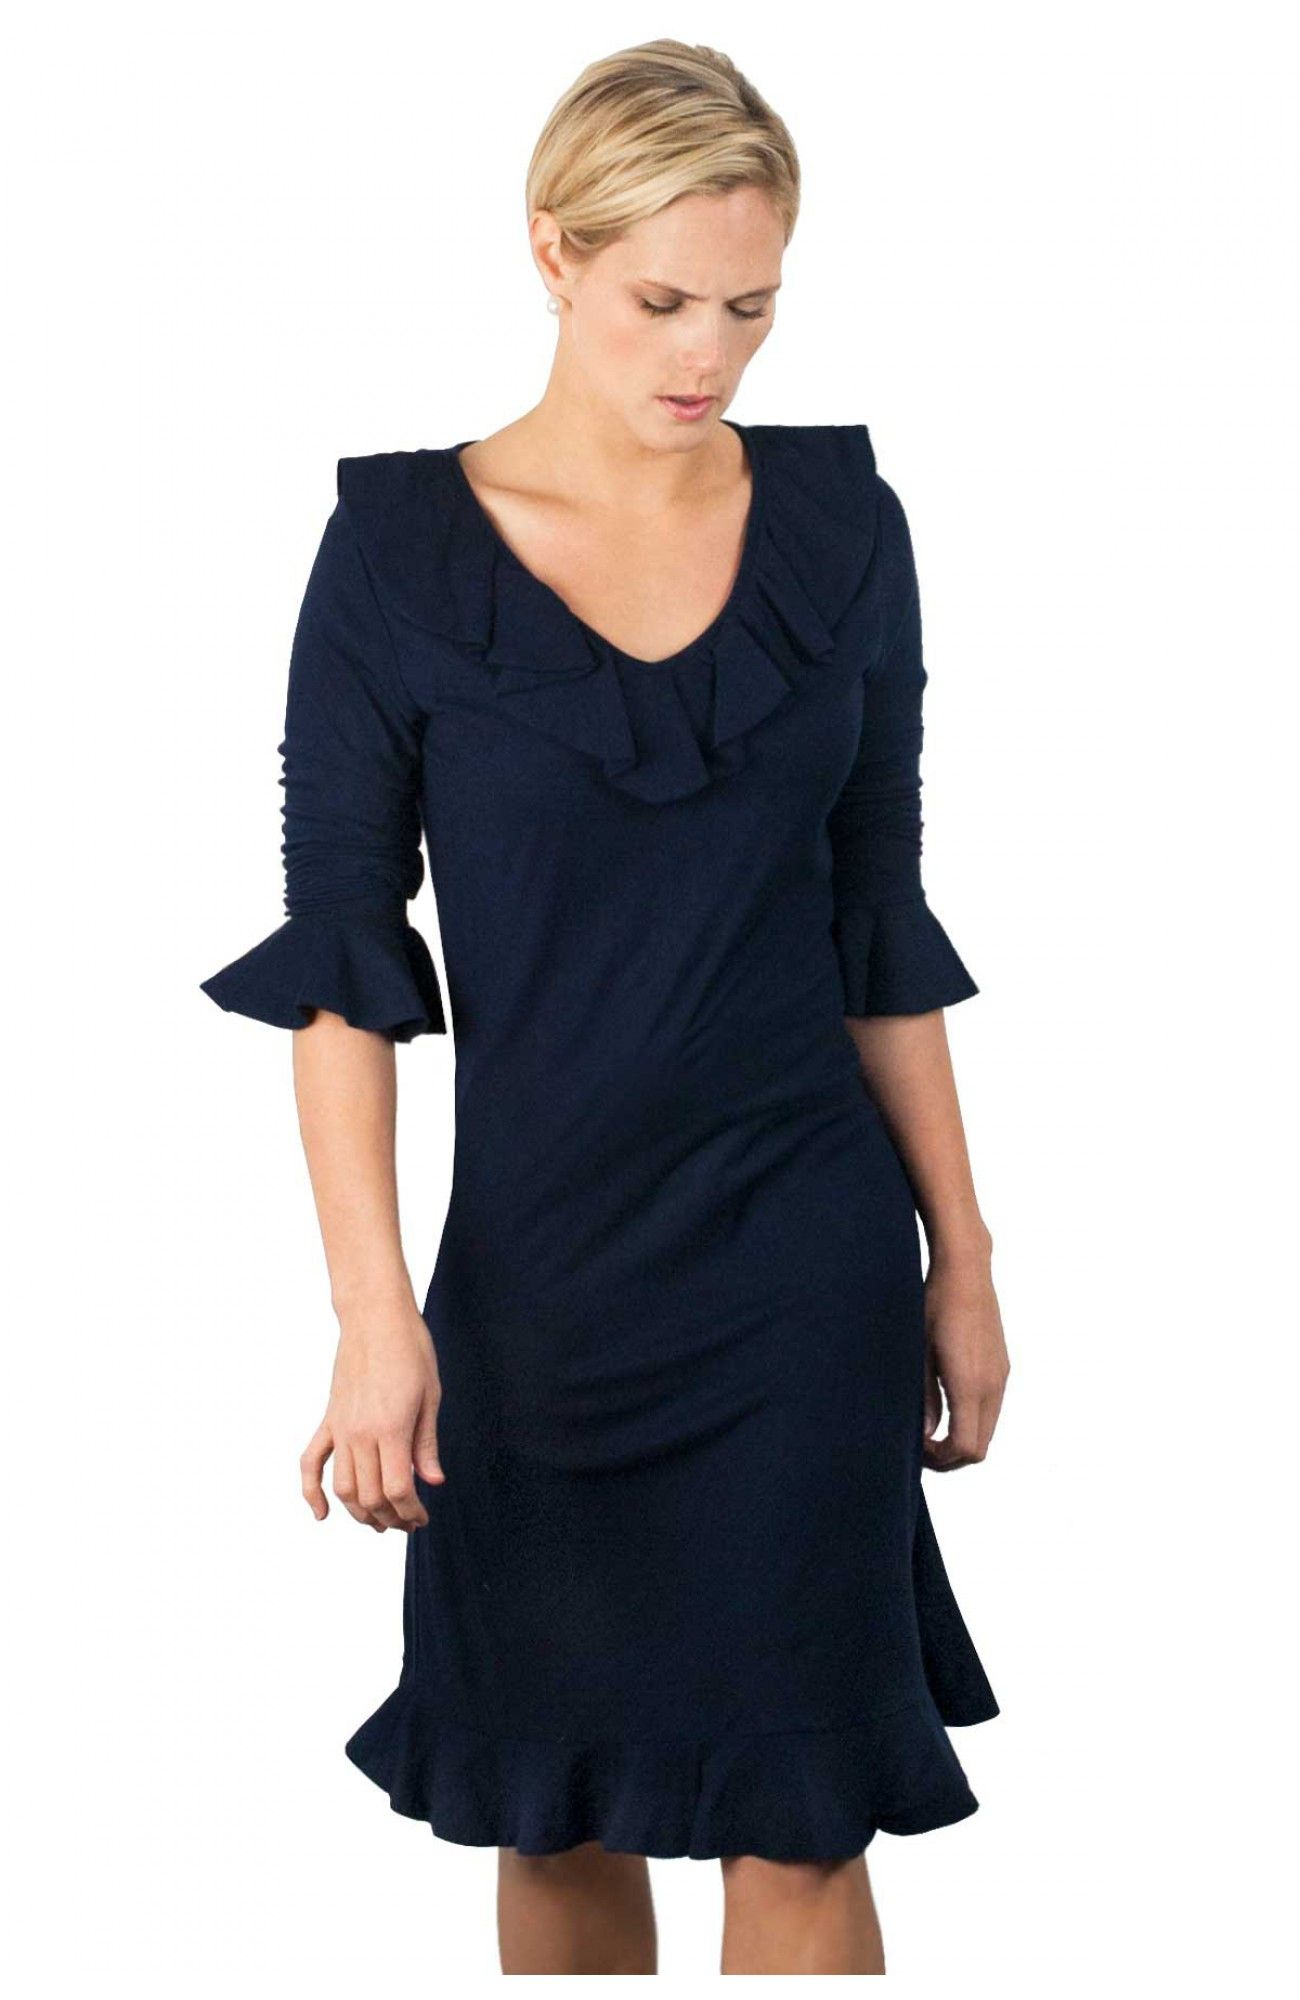 Gretchen Scott Cotton Cashmere Tango Dress